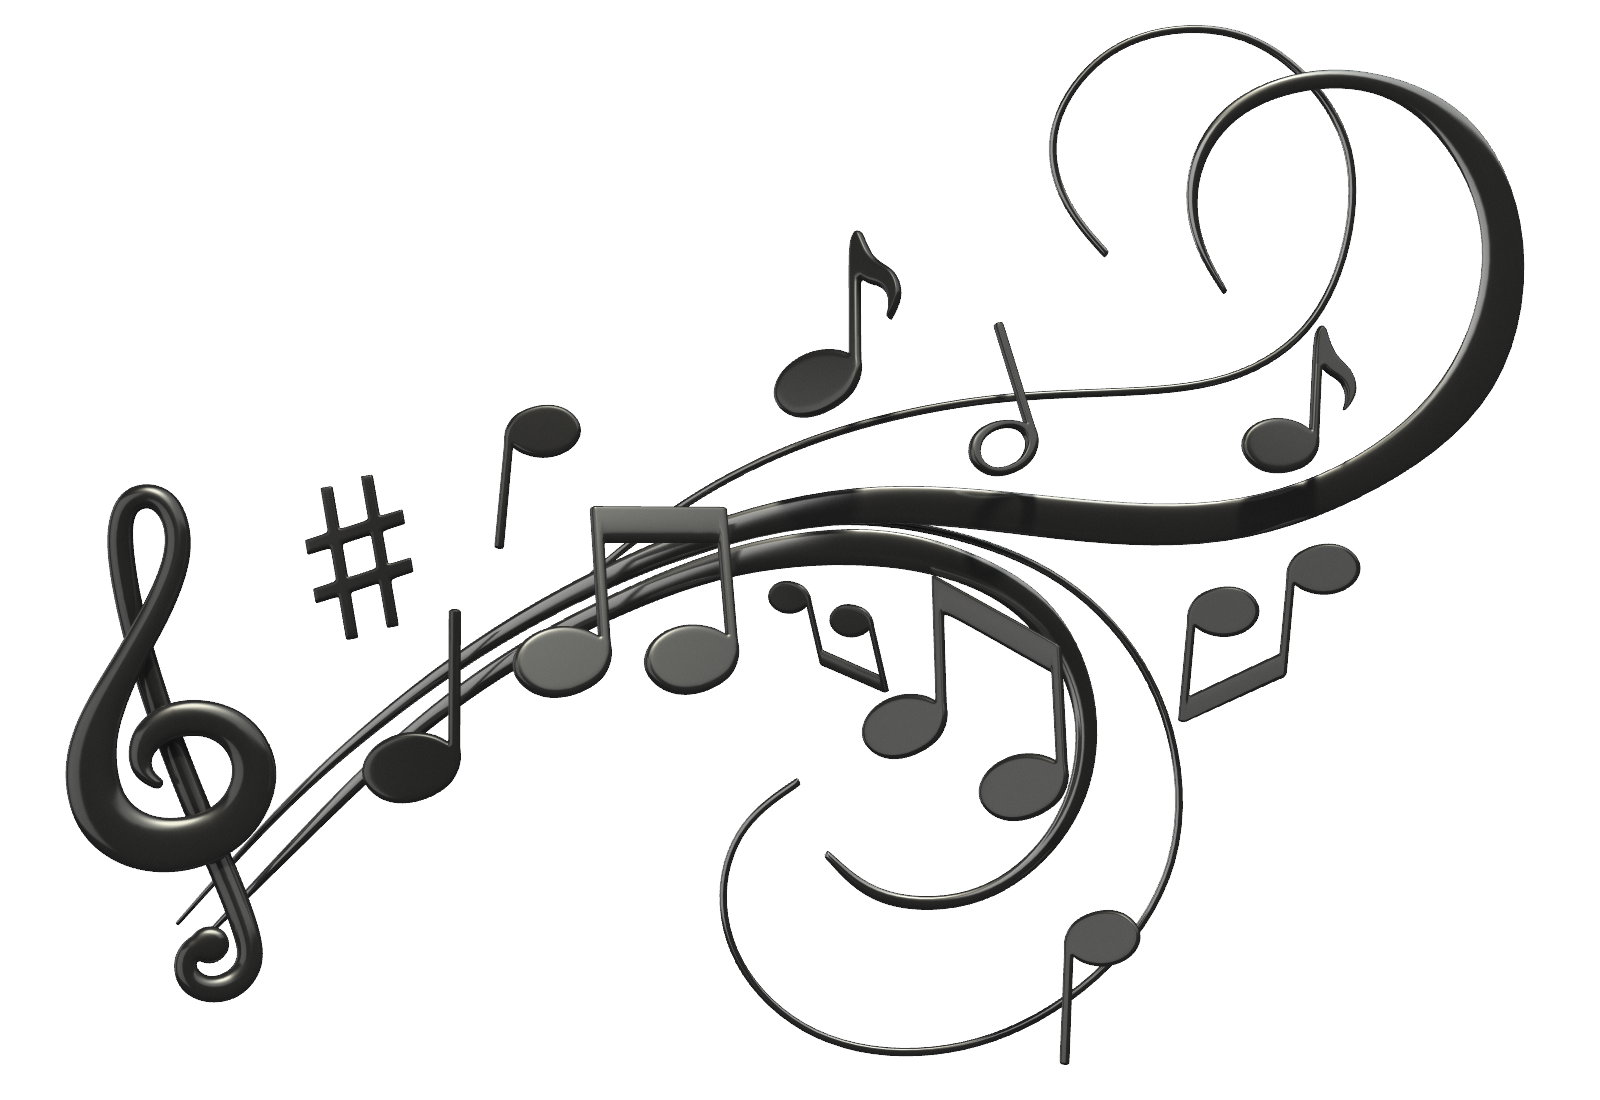 Music notes going around the sun clipart jpg free download pictures of musical notes | Saturday, March 2, 2013 | art ... jpg free download